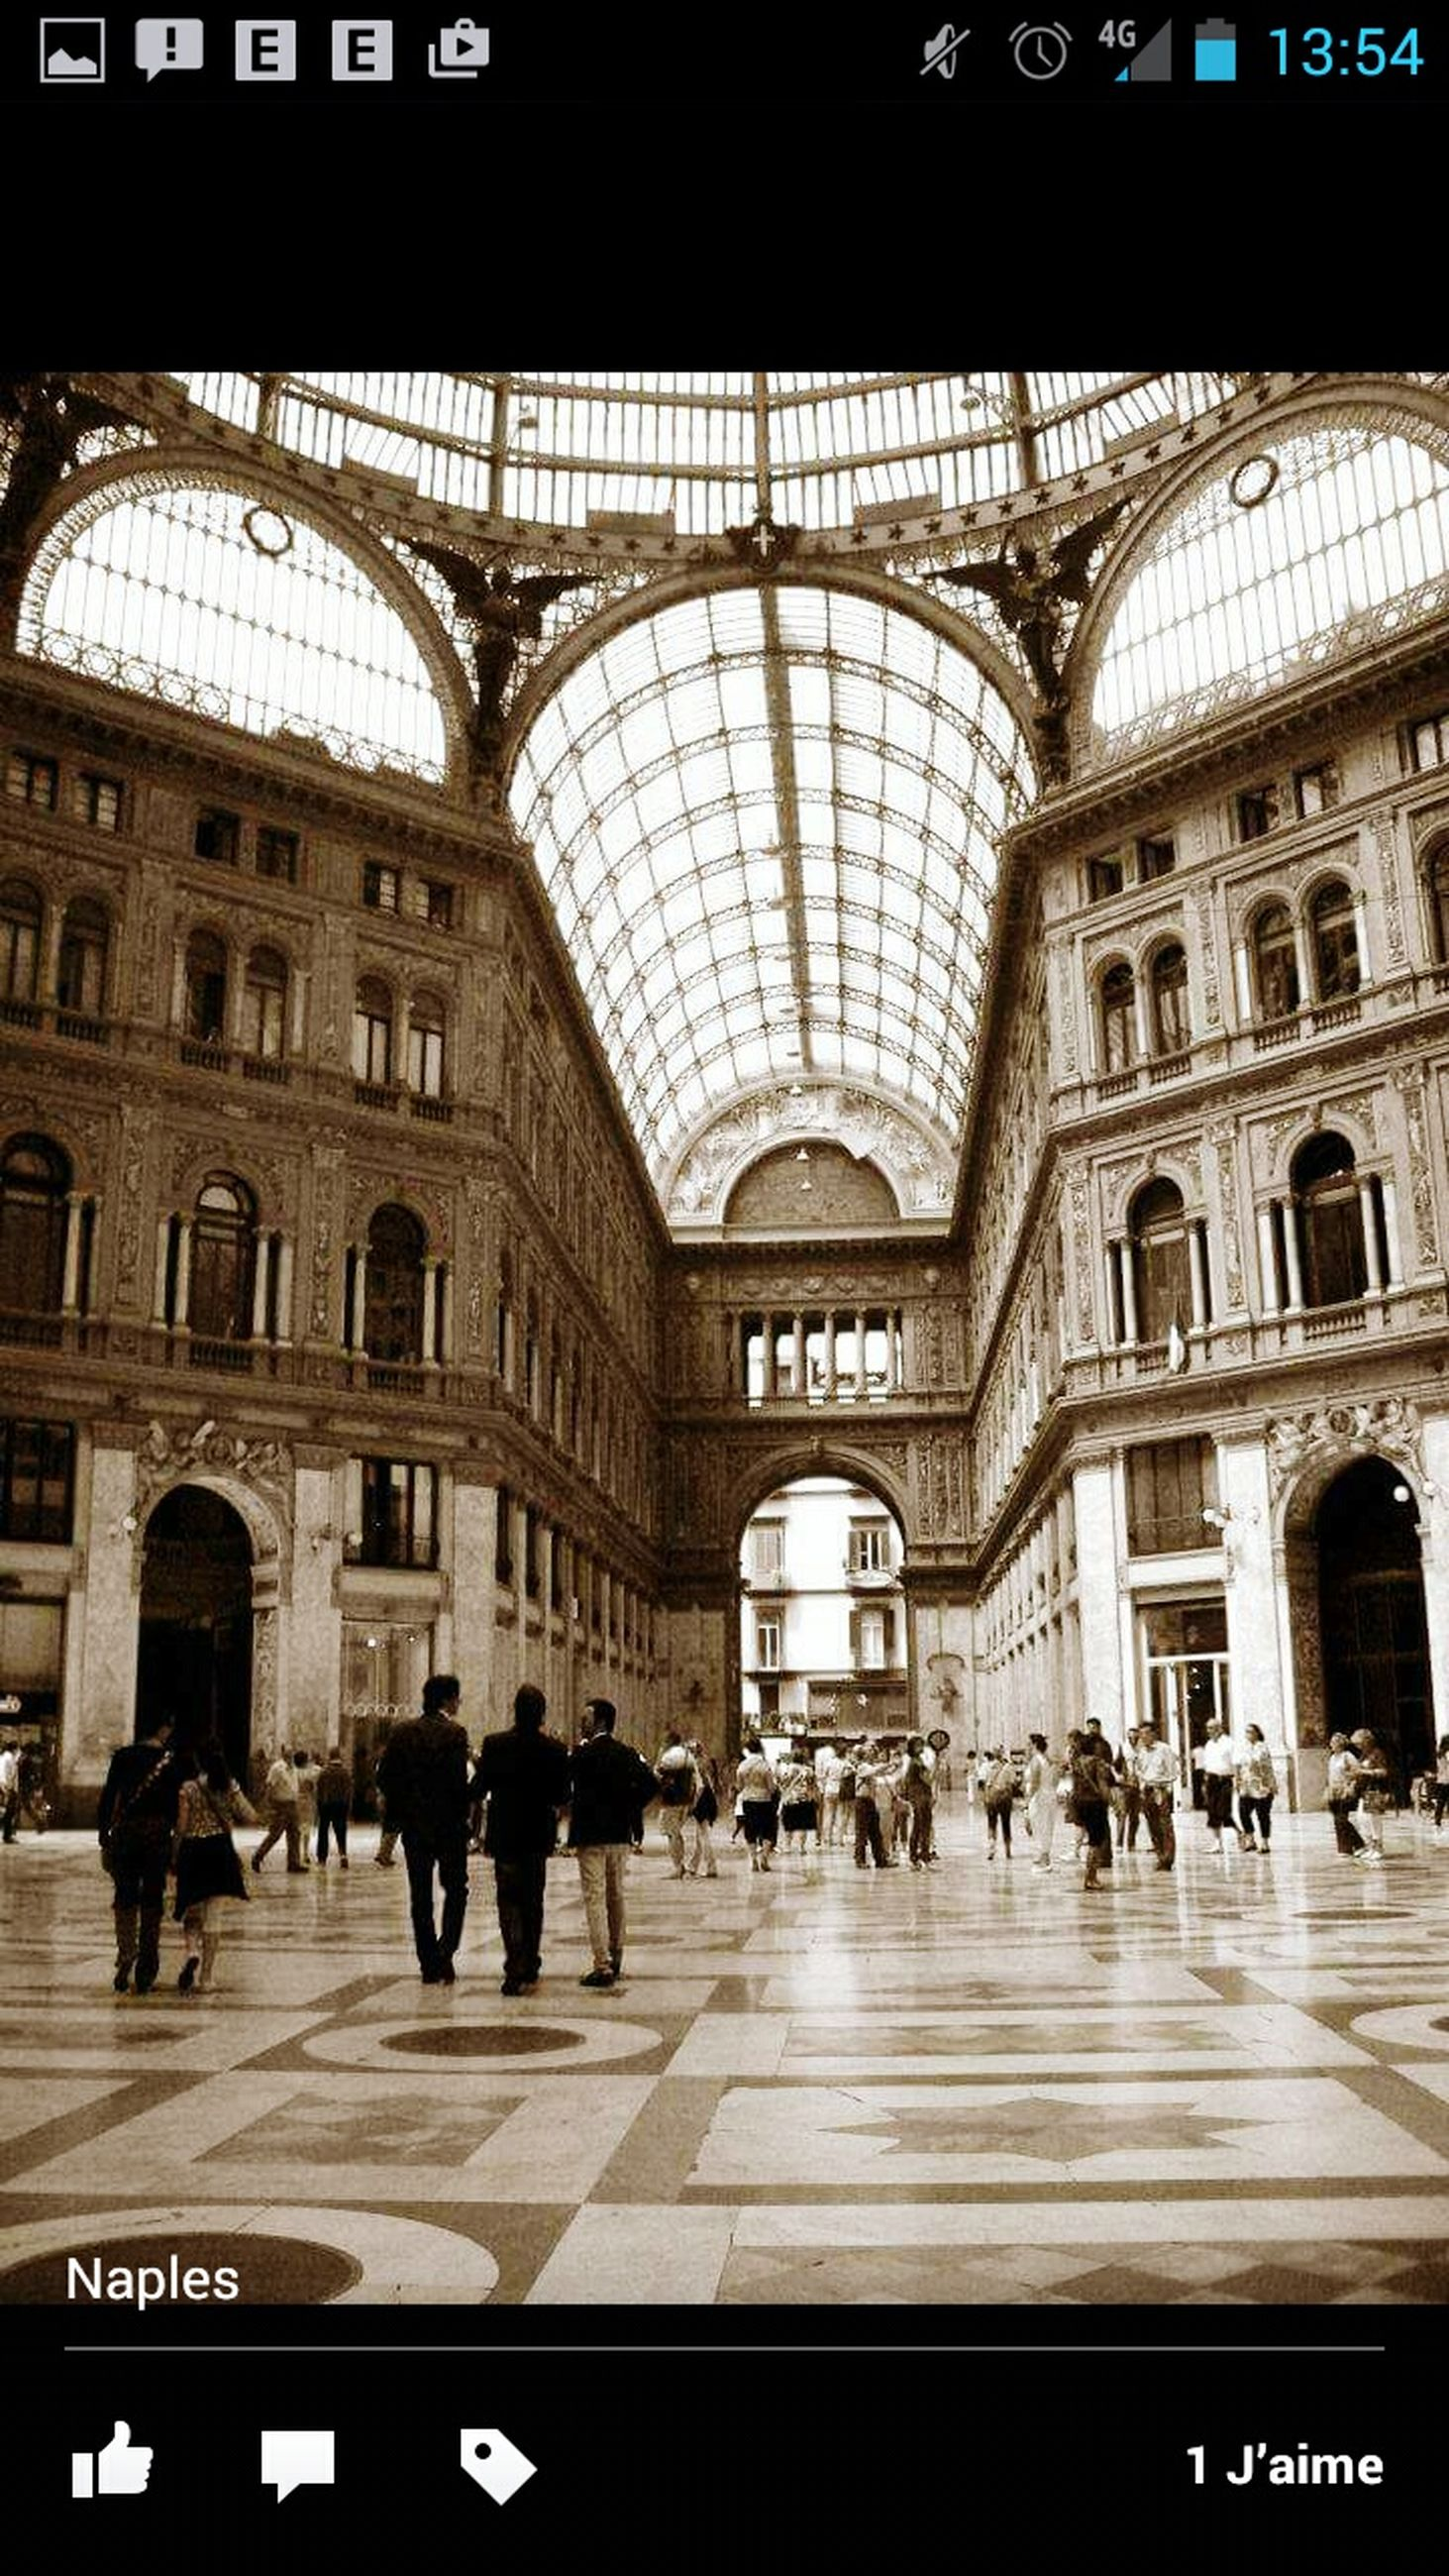 large group of people, architecture, built structure, indoors, men, person, arch, walking, building exterior, text, city life, travel destinations, lifestyles, travel, ceiling, city, railroad station, famous place, group of people